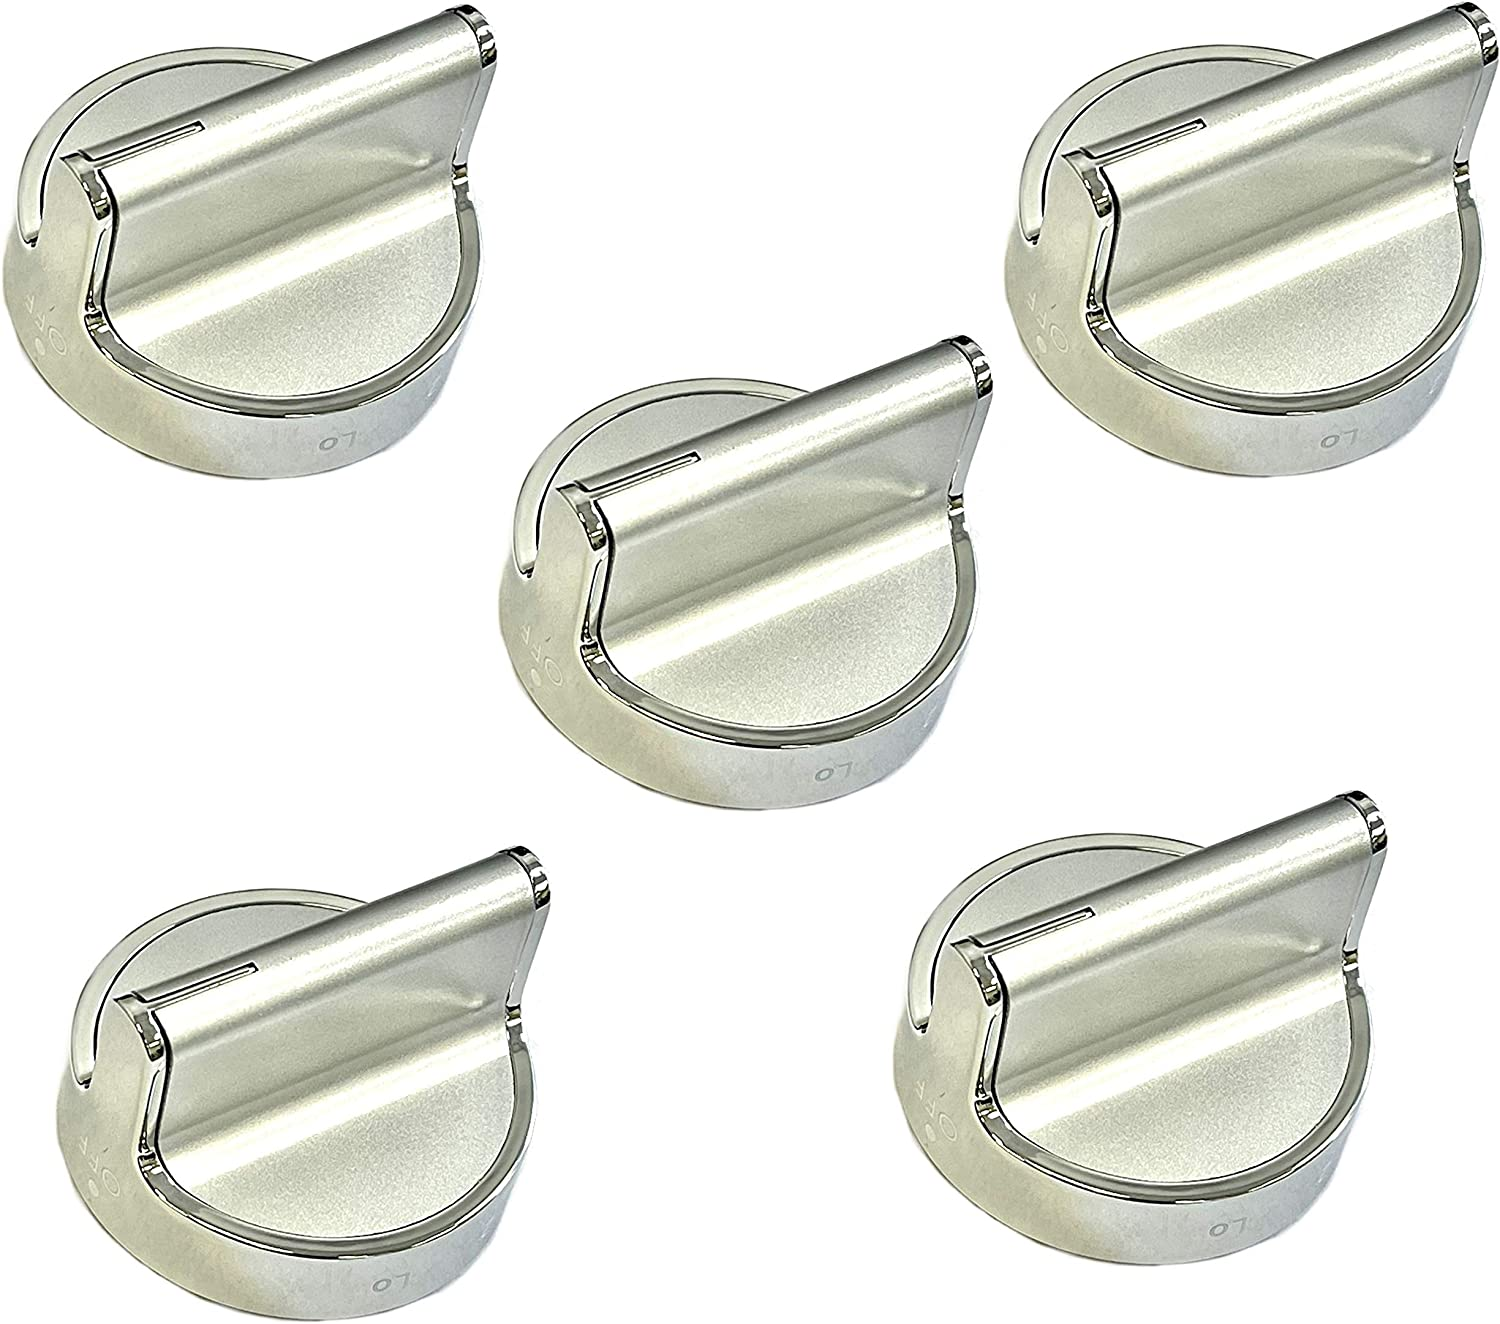 W10766544 Range Knob Replacement for W10430807 W10676228 (5 Pack)